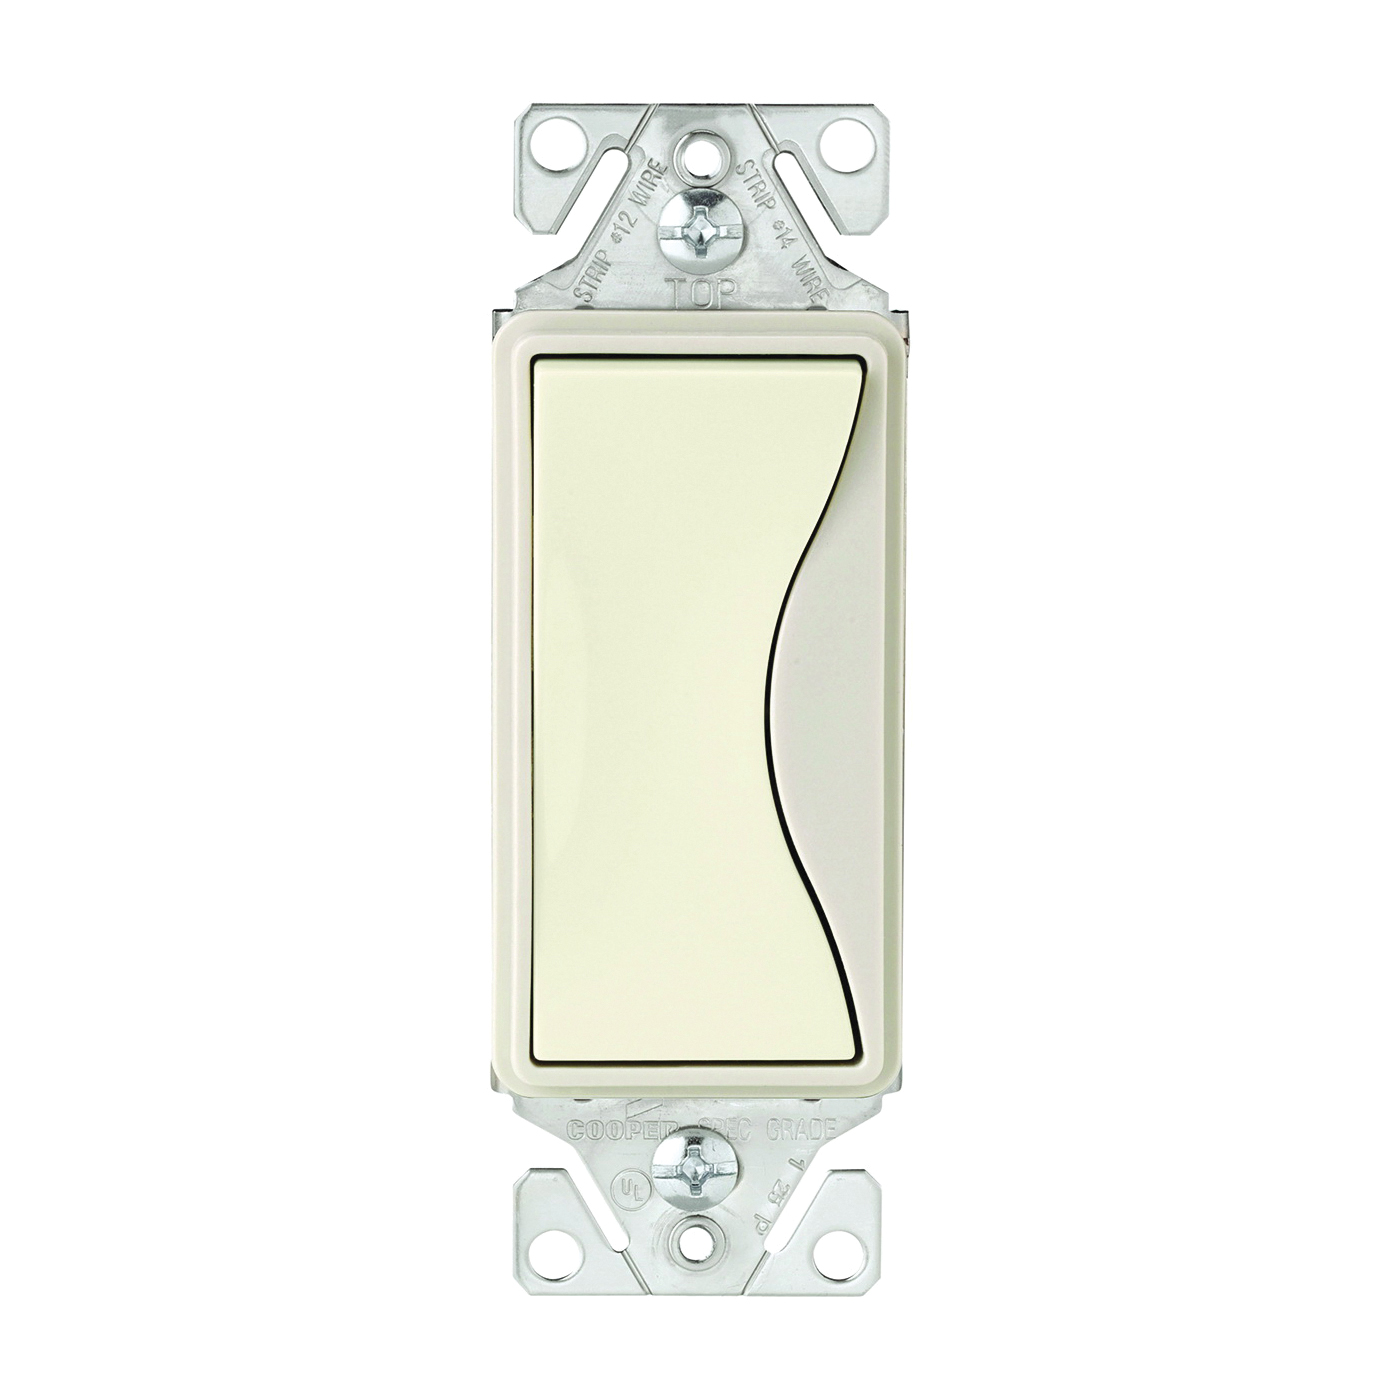 Picture of Eaton Wiring Devices ASPIRE 9503DS Rocker Switch, 15 A, 120/277 V, 3-Way, Push-In Terminal, Desert Sand